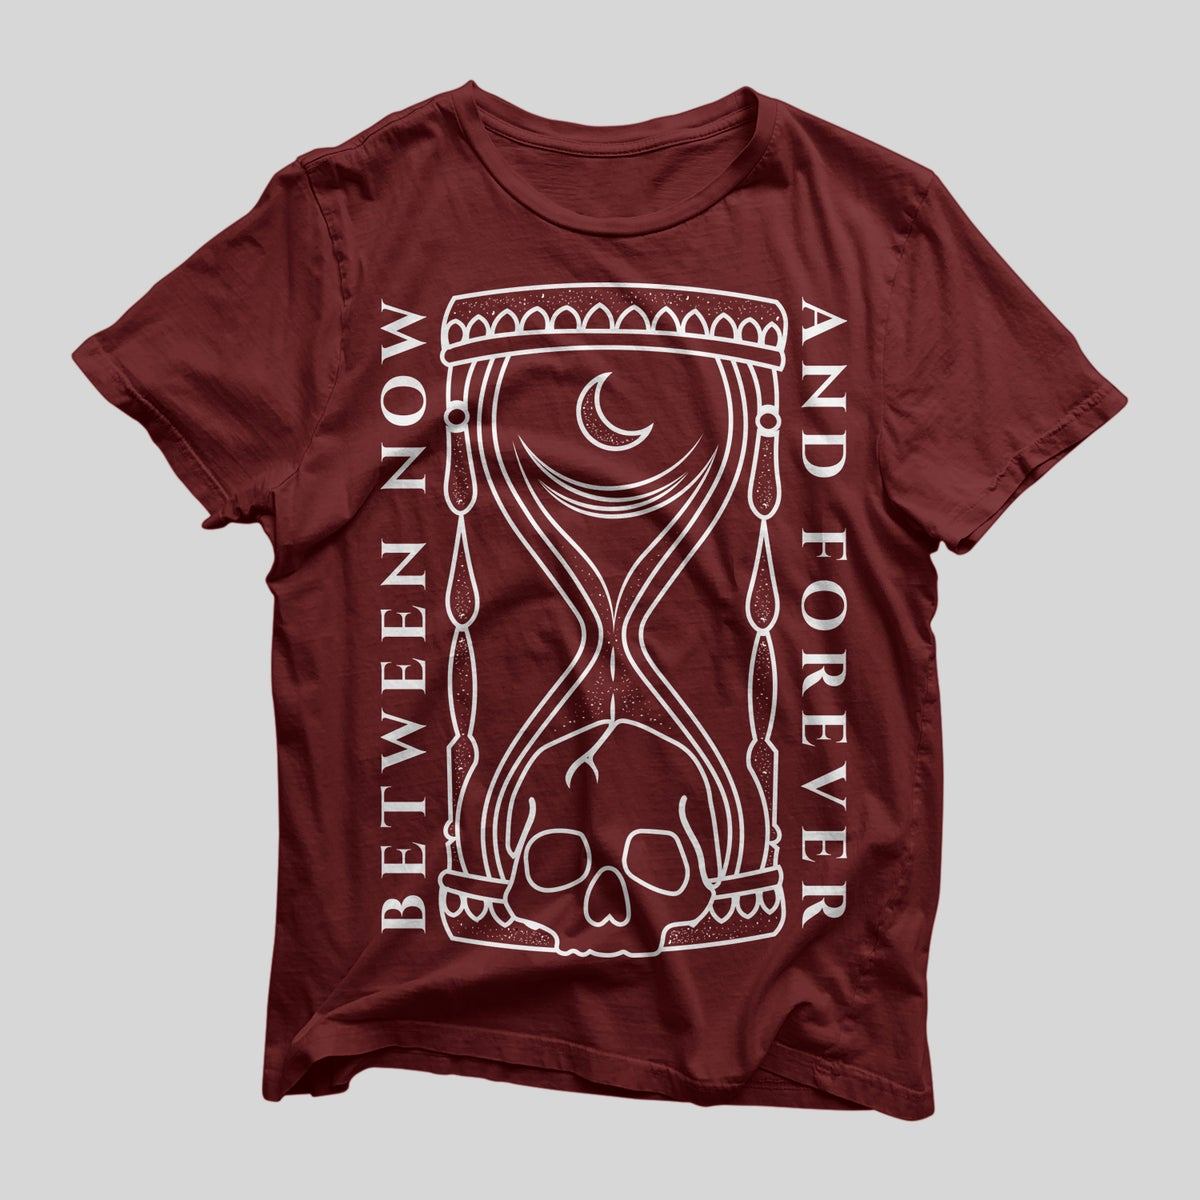 Image of Hourglass Tee - Maroon and White